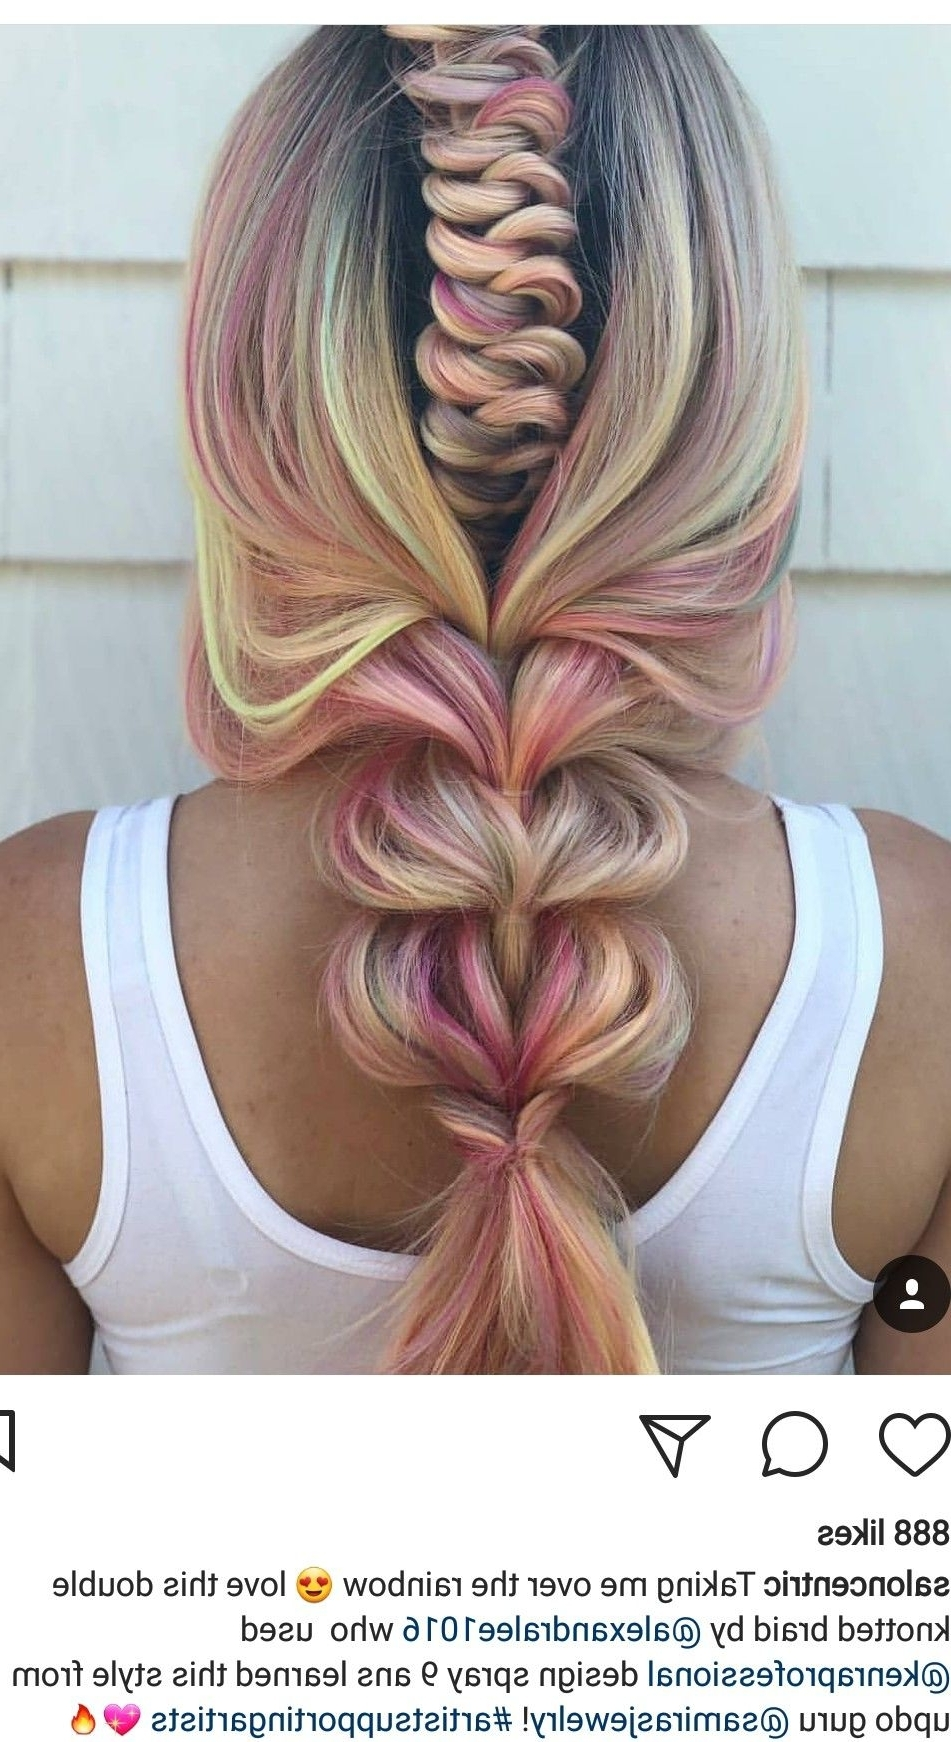 Intricate Braid Within A Braid With Rainbow Colored Highlights Intended For Most Up To Date Intricate Updo Ponytail Hairstyles For Highlighted Hair (Gallery 15 of 20)